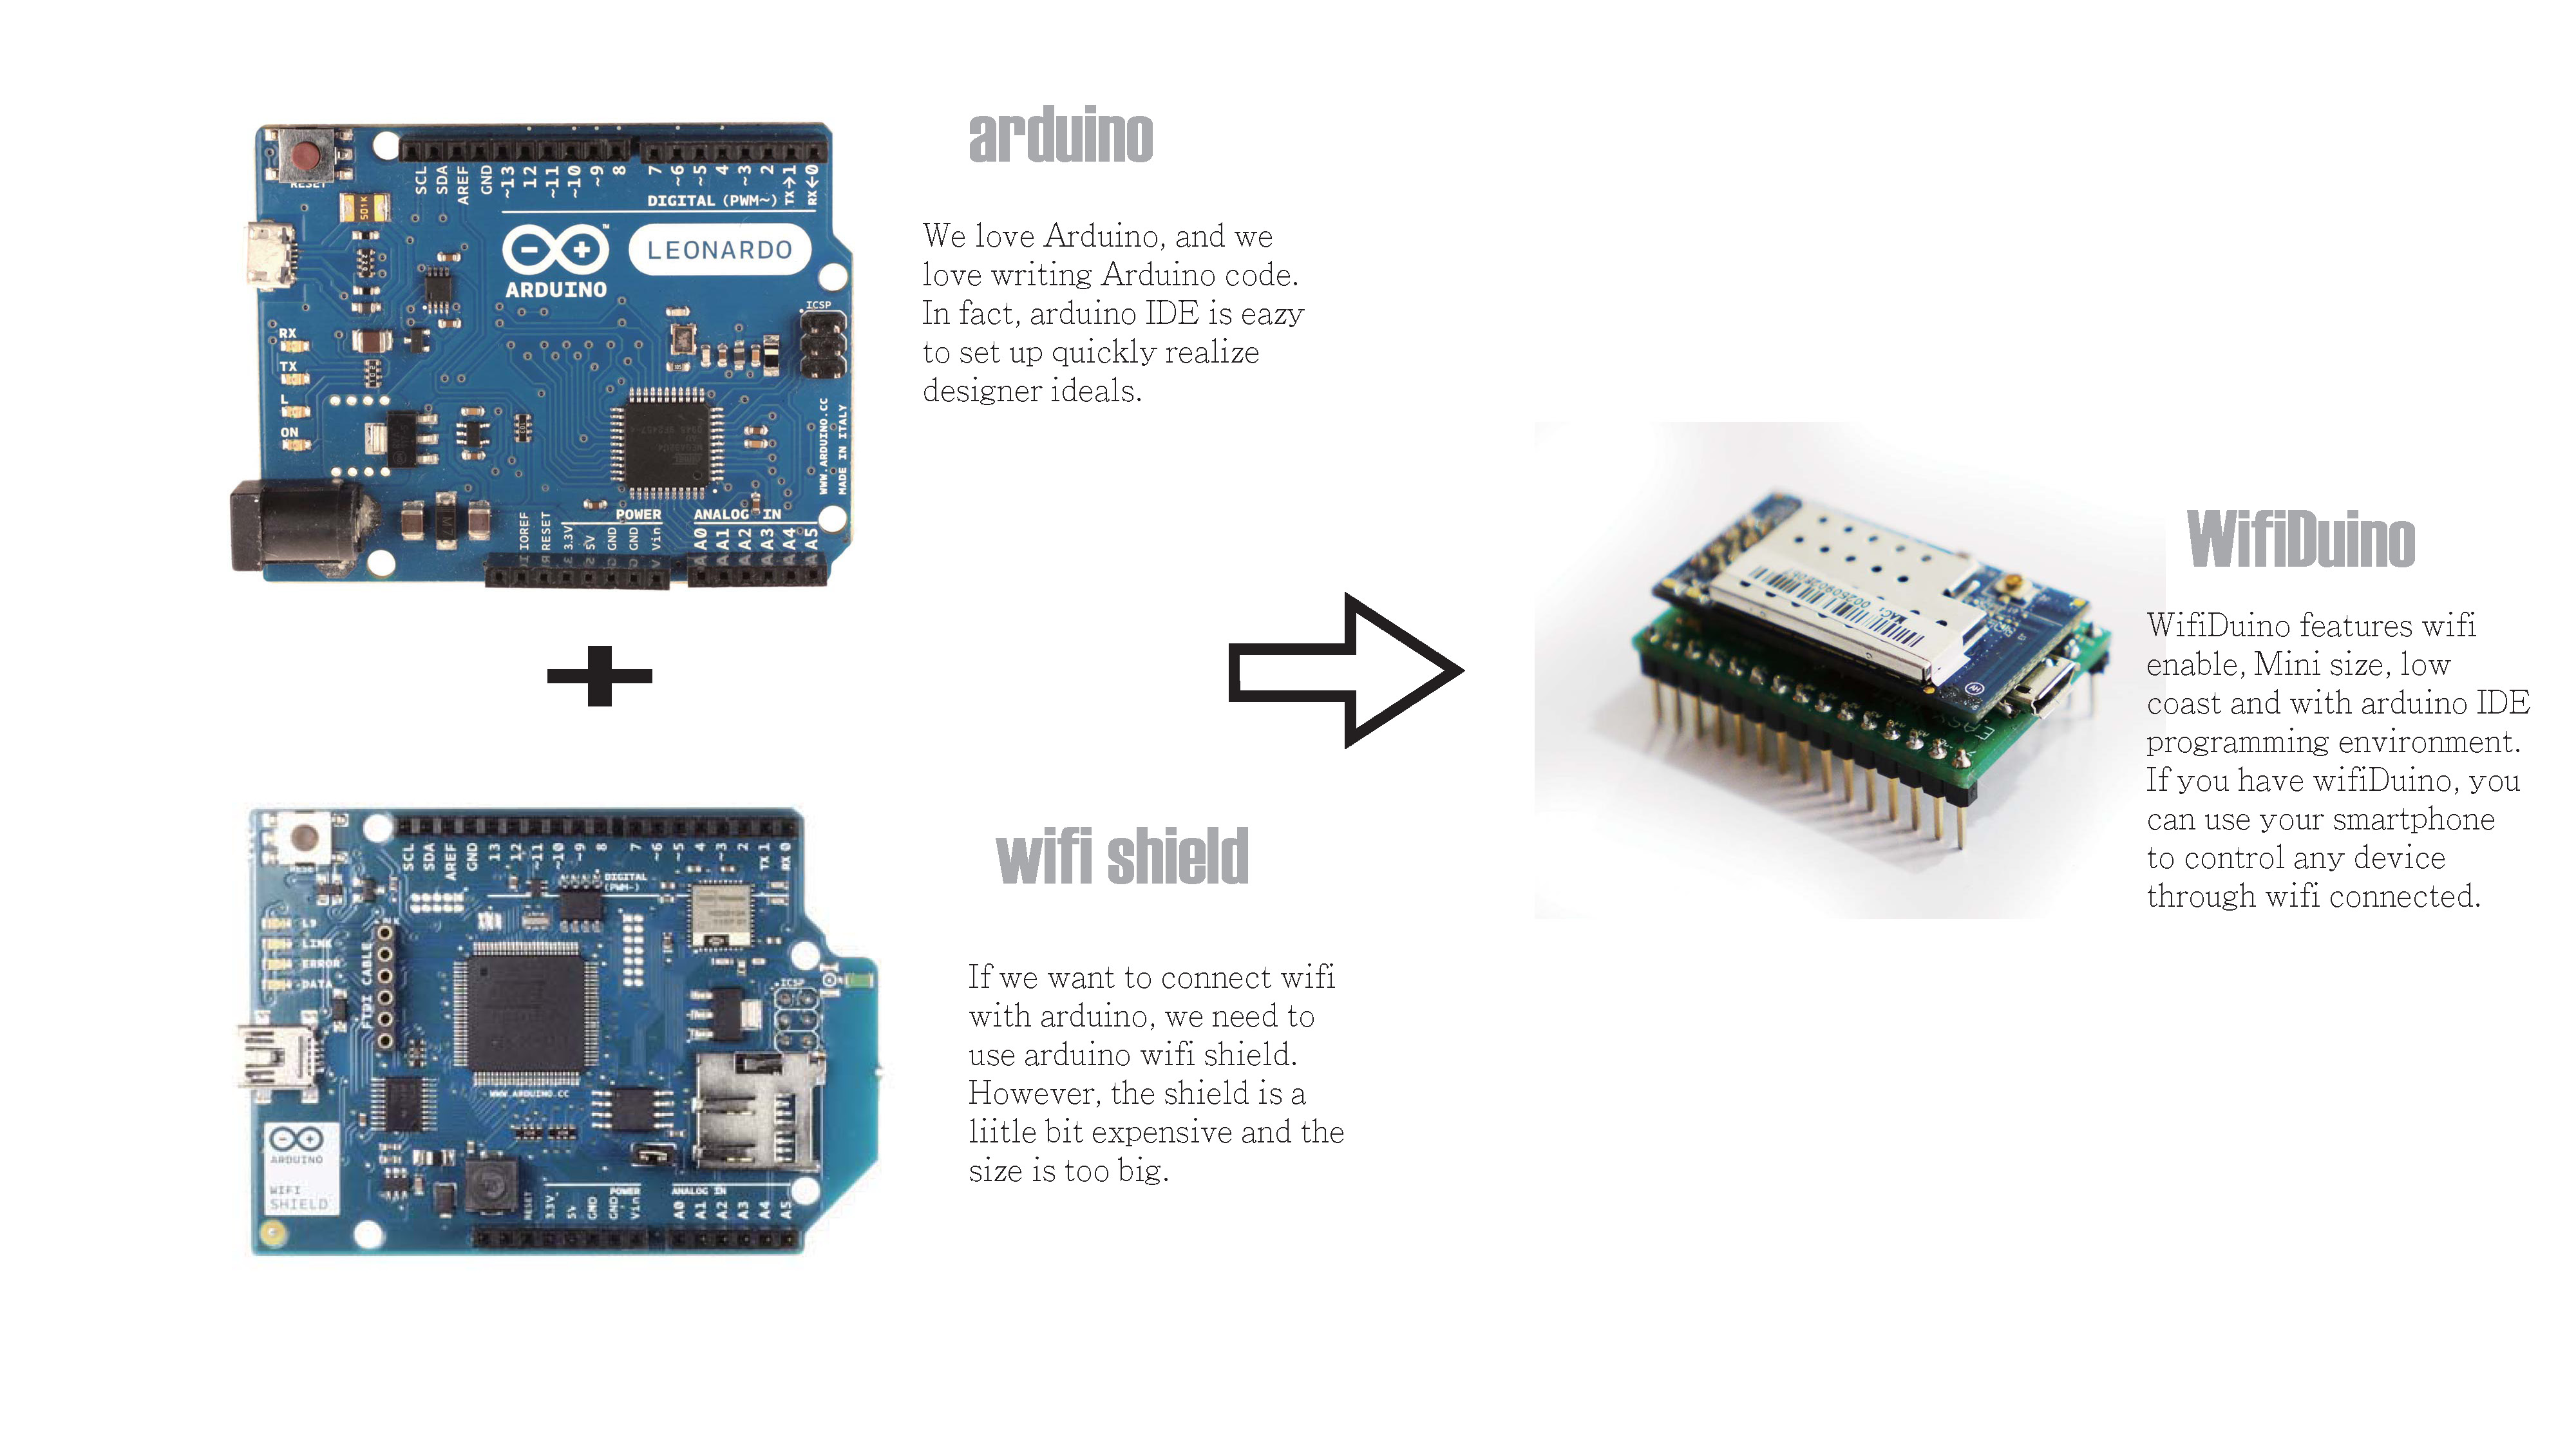 Wifiduino Indiegogo Wifi Amplifier On So Do It Your Self Electronic Circuit Design All You Need To Is Get Yourself A Wi Fi Connected Simple And Easy Use Board Build Everything Youve Ever Wanted